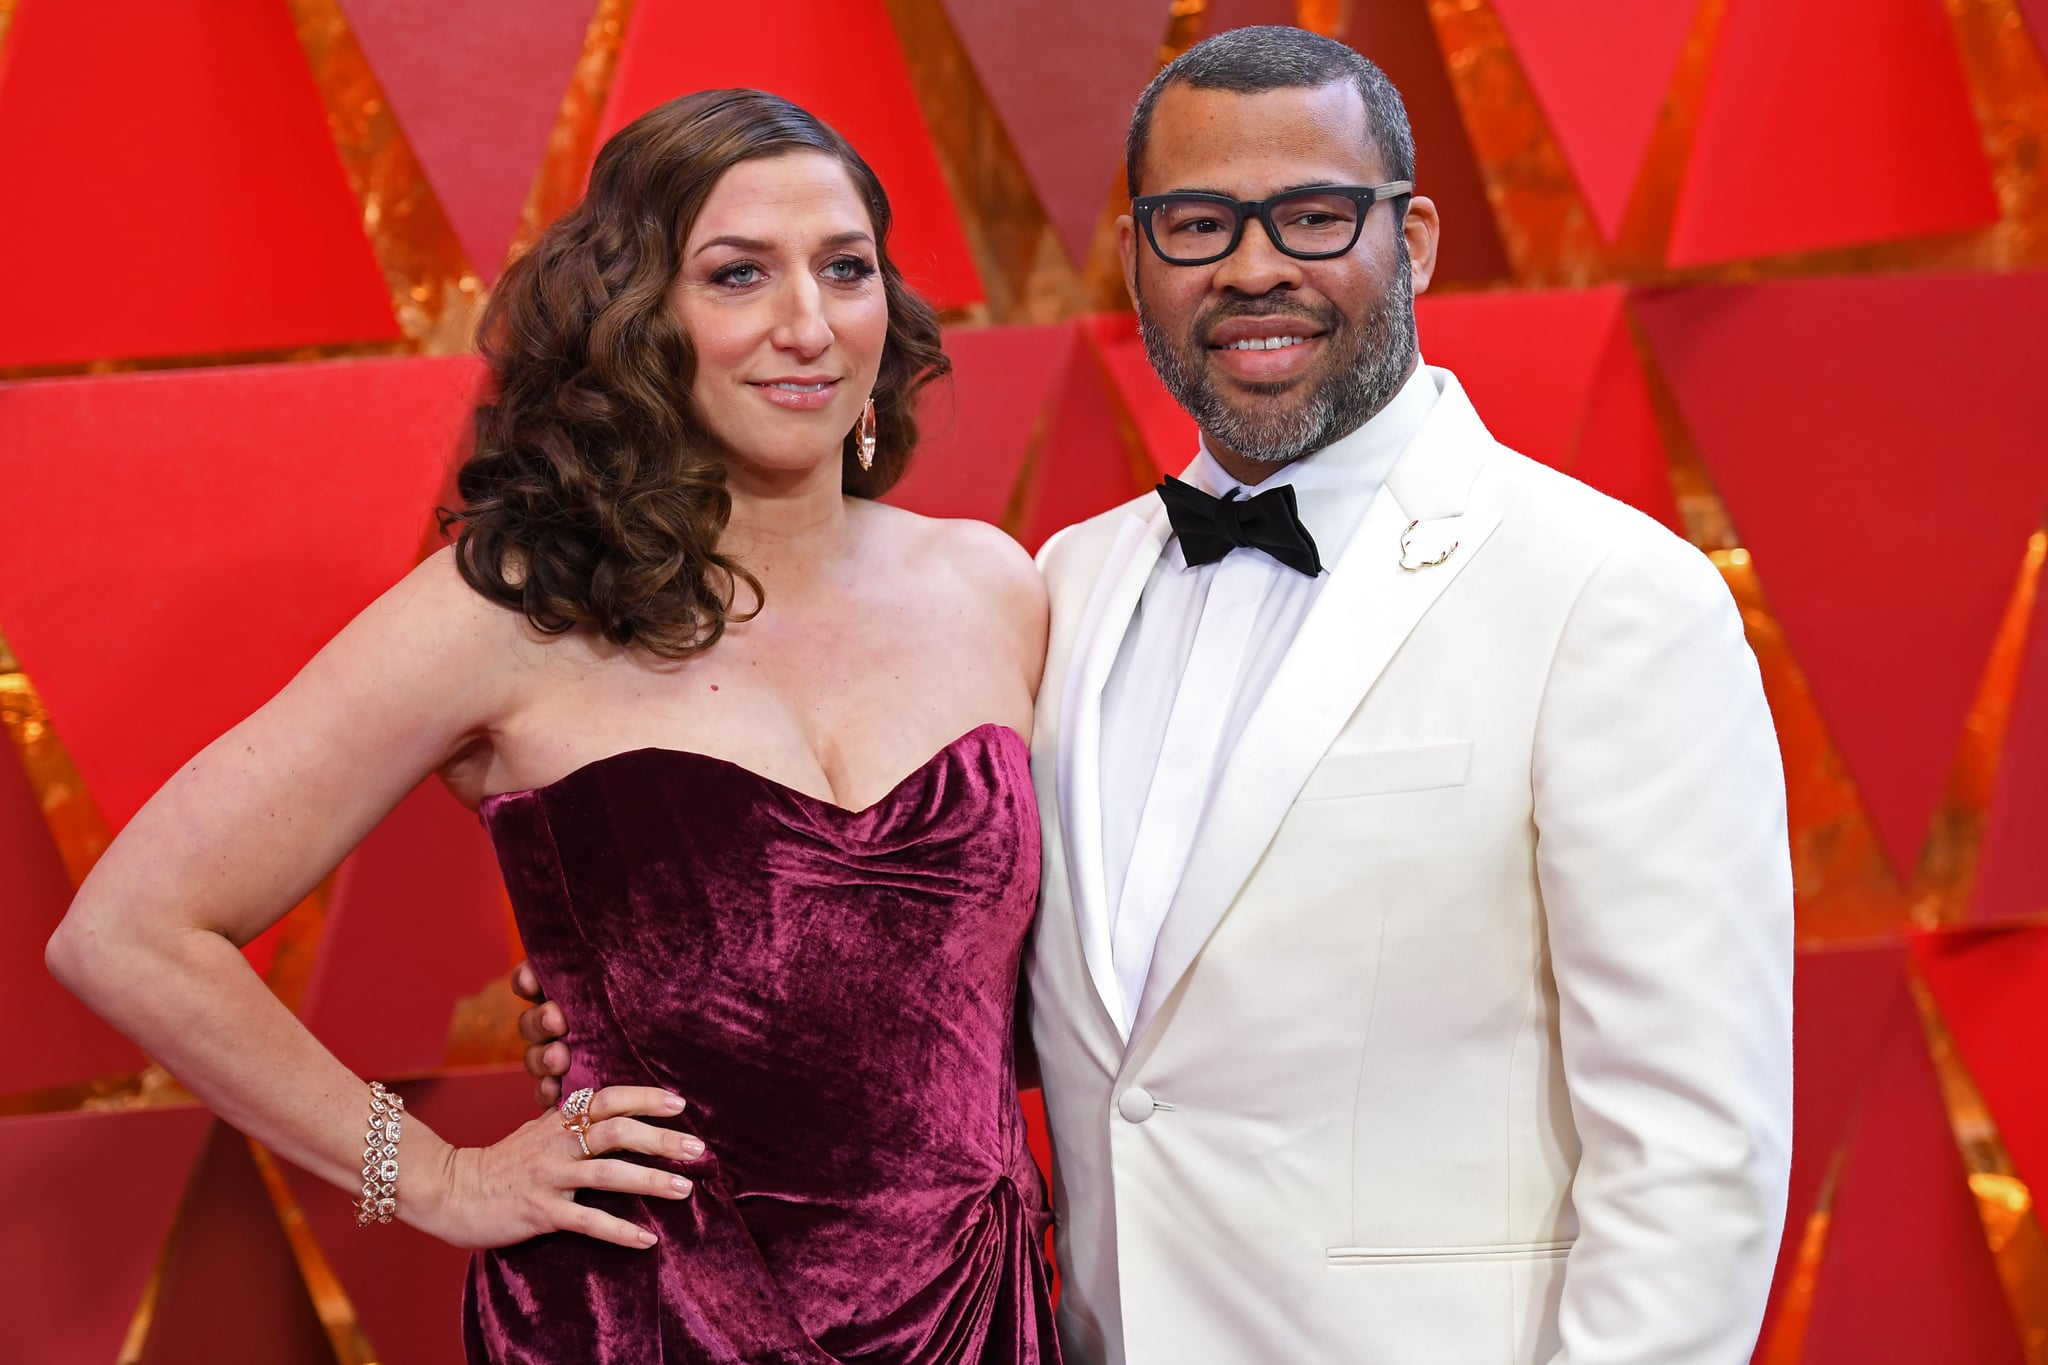 Jordan Peele Dedicates Original Screenplay Oscar To Those